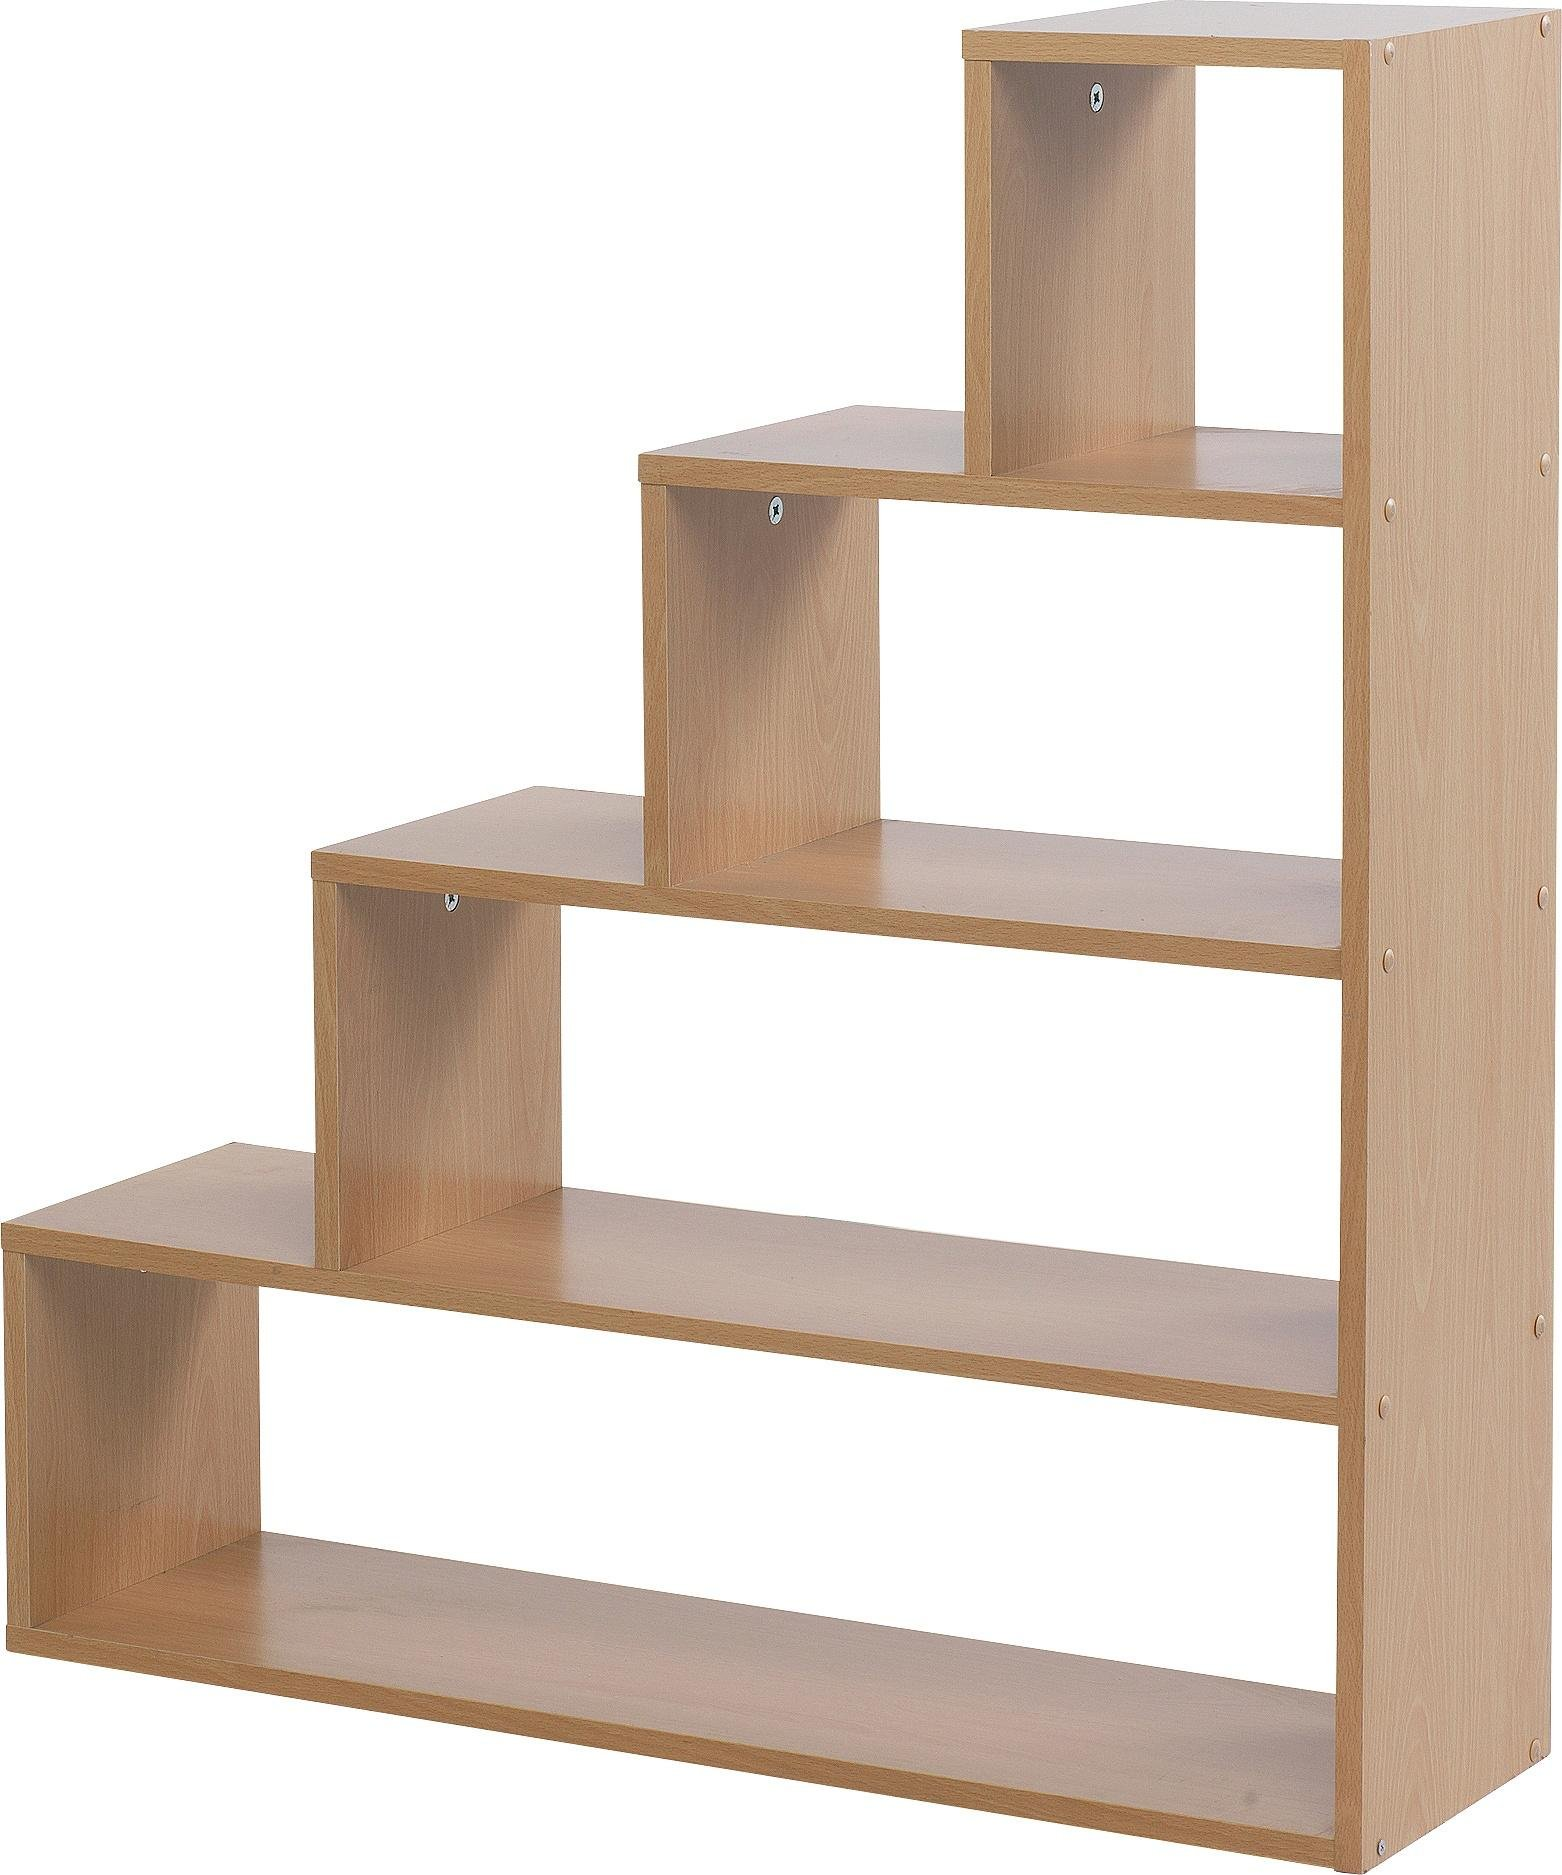 Stairs Shelving Under Stairs Shelving Unit Talentneeds